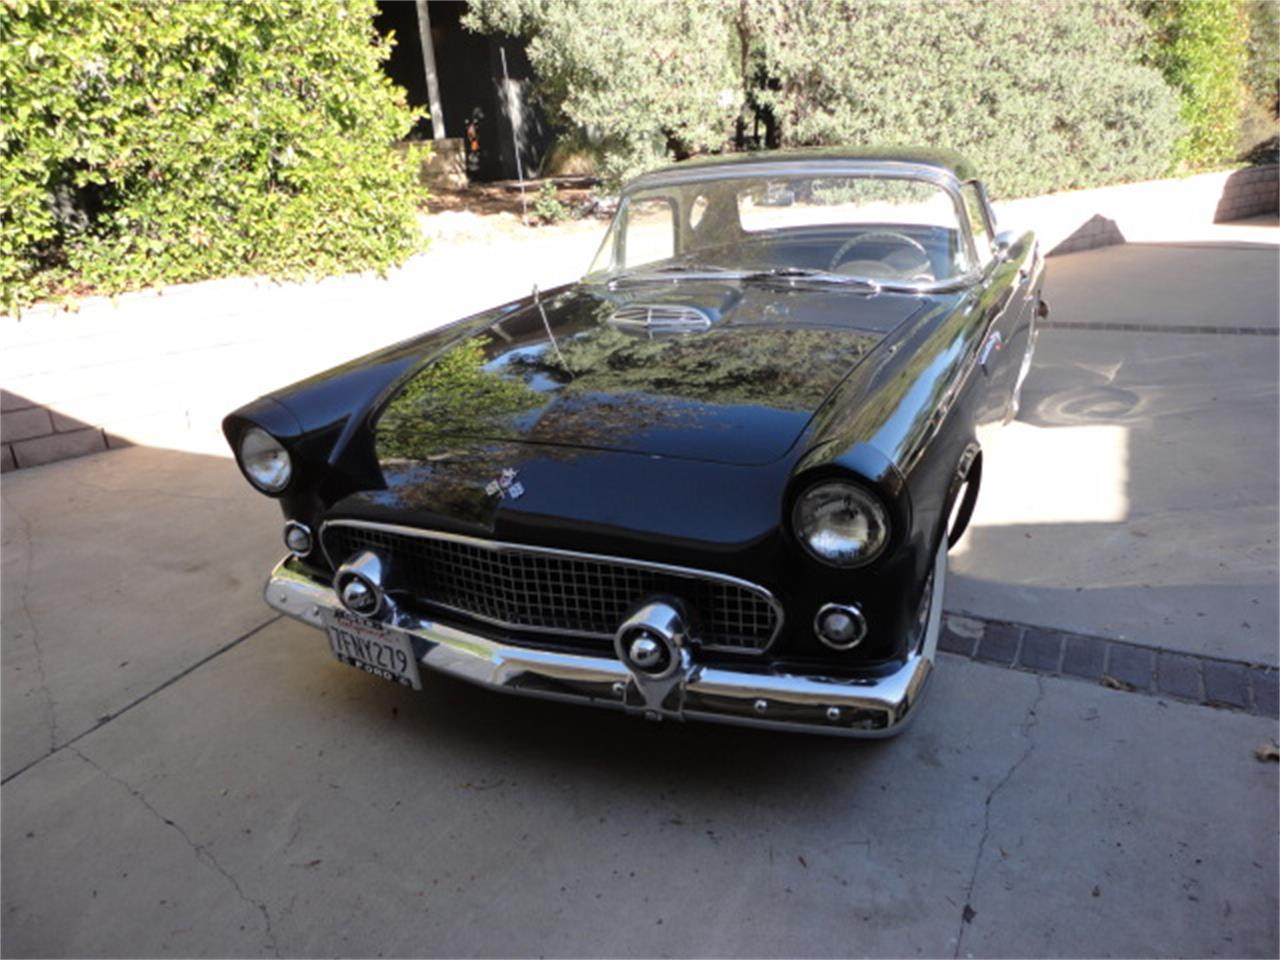 Large Picture of Classic '55 Ford Thunderbird - $24,500.00 Offered by a Private Seller - OQPP